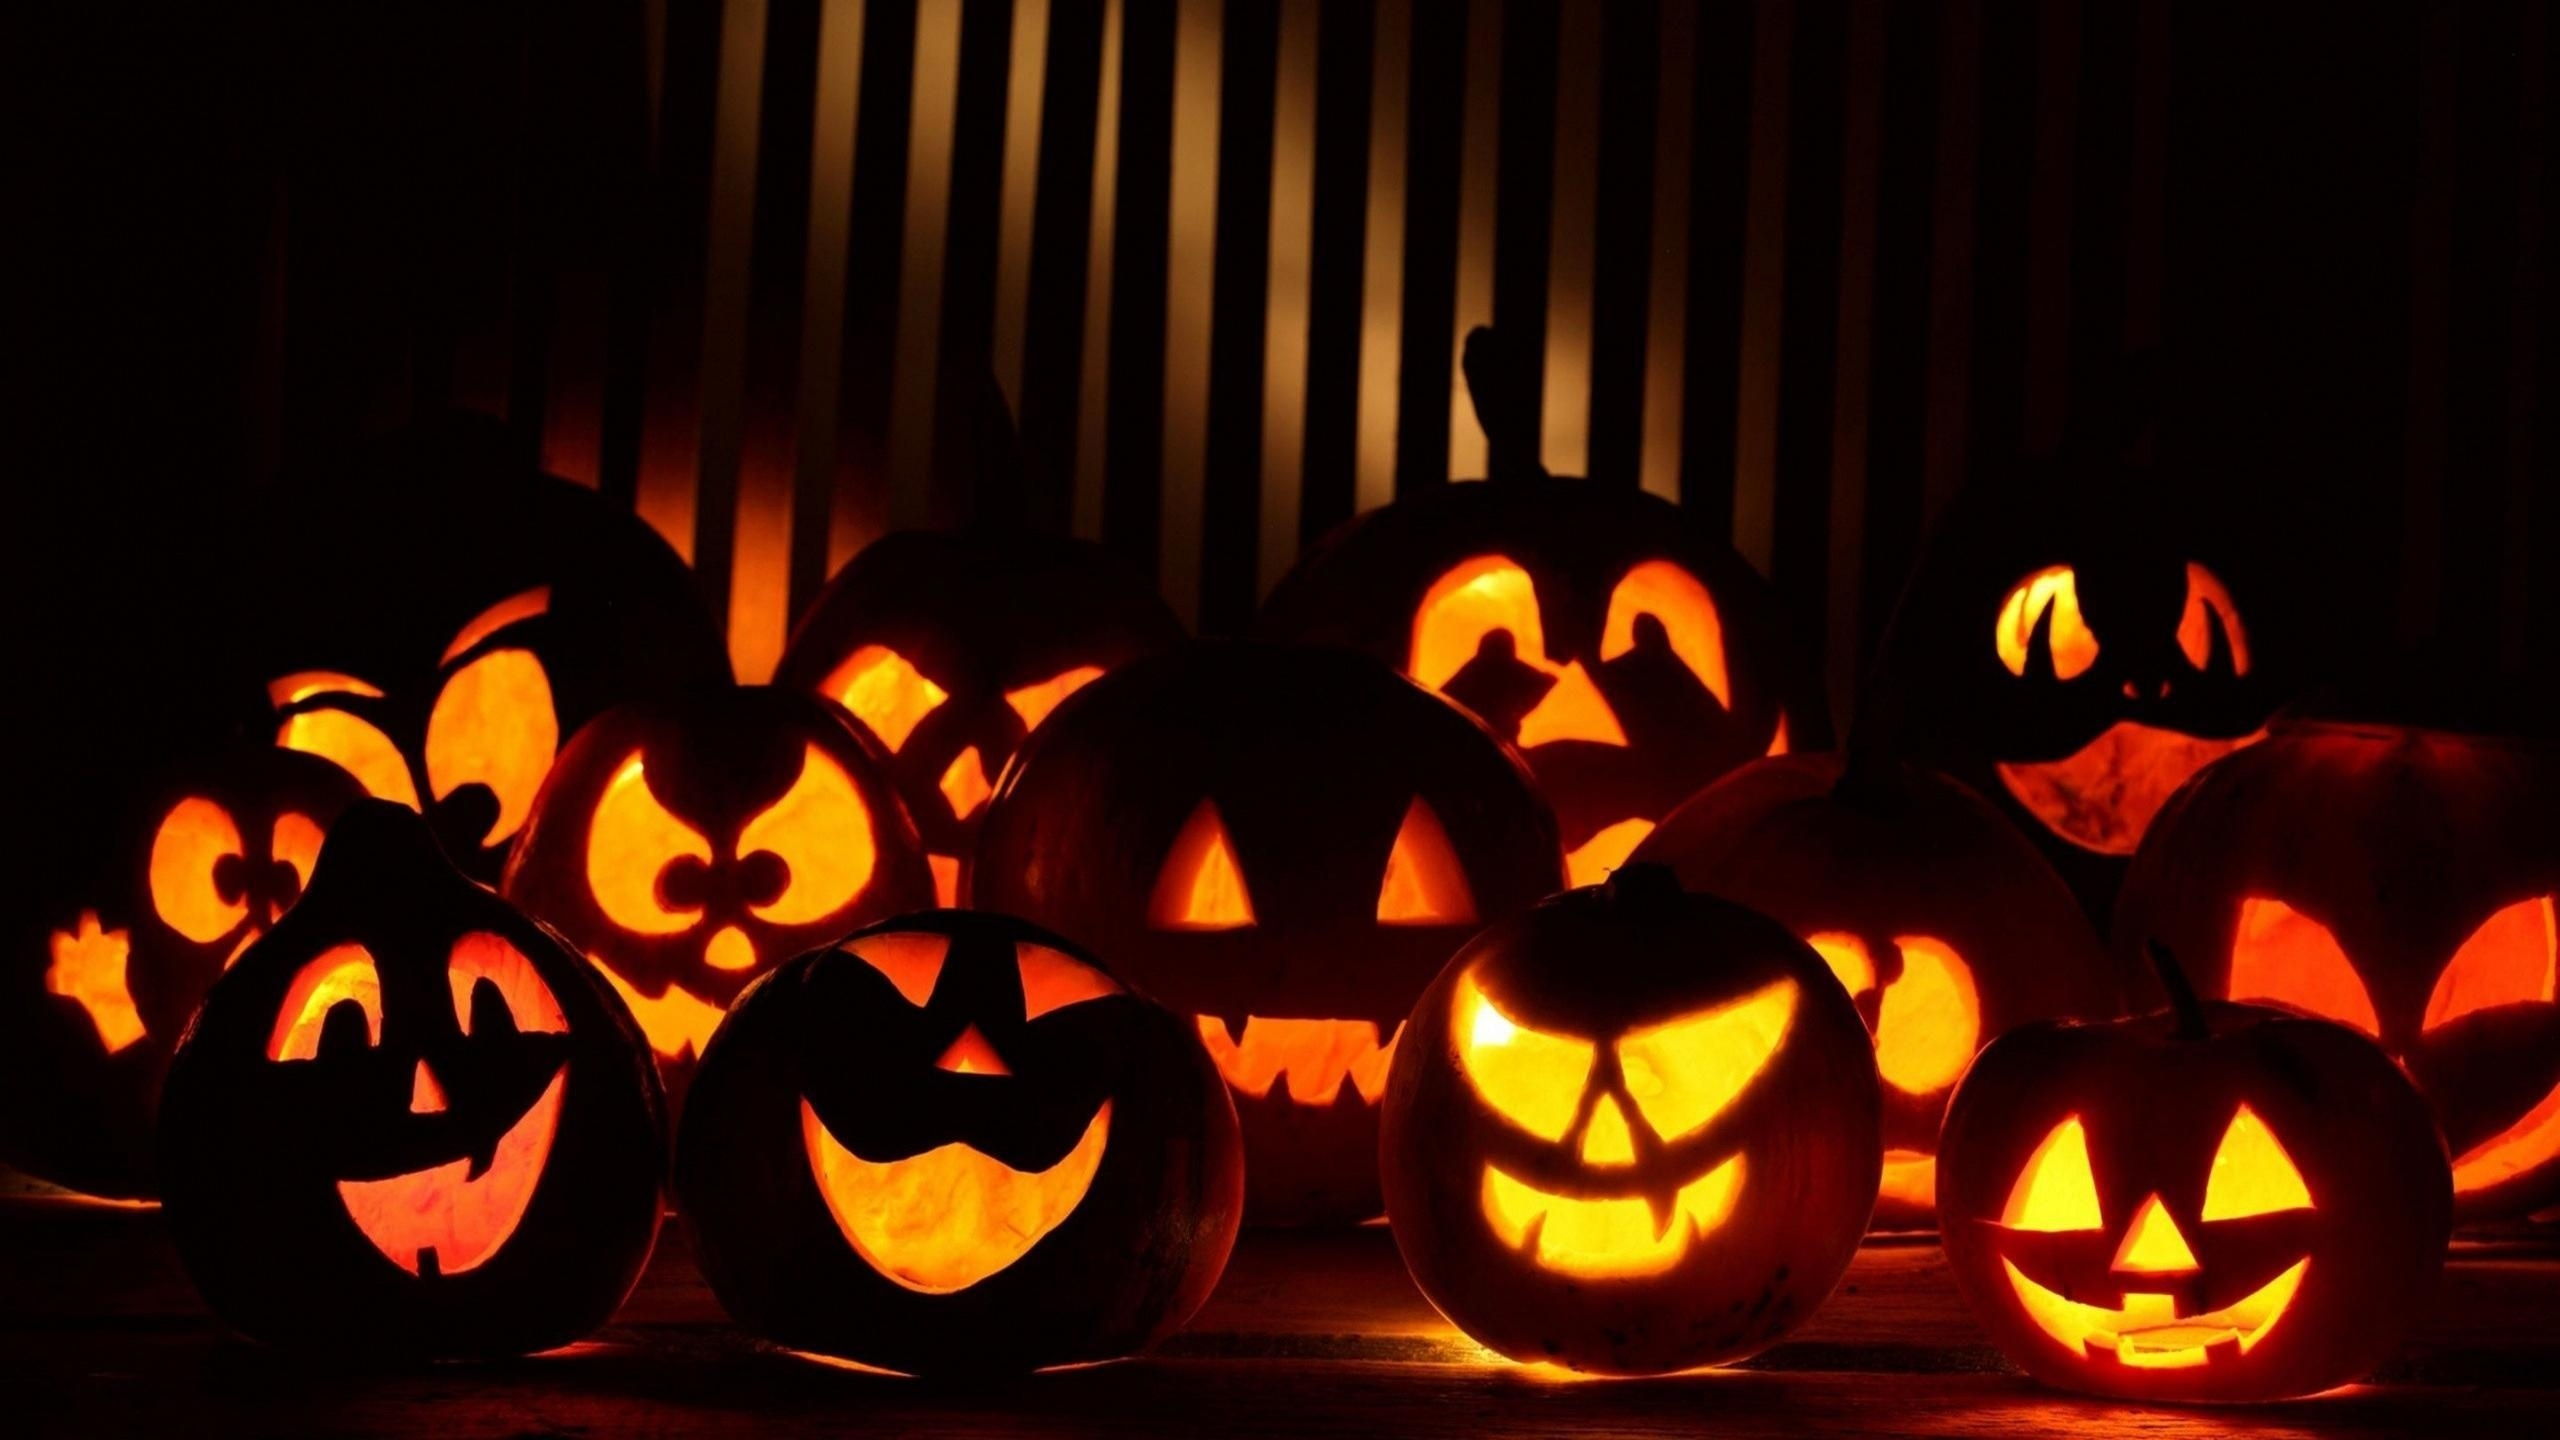 many halloween pumpkins hd desktop wallpaper : widescreen : high